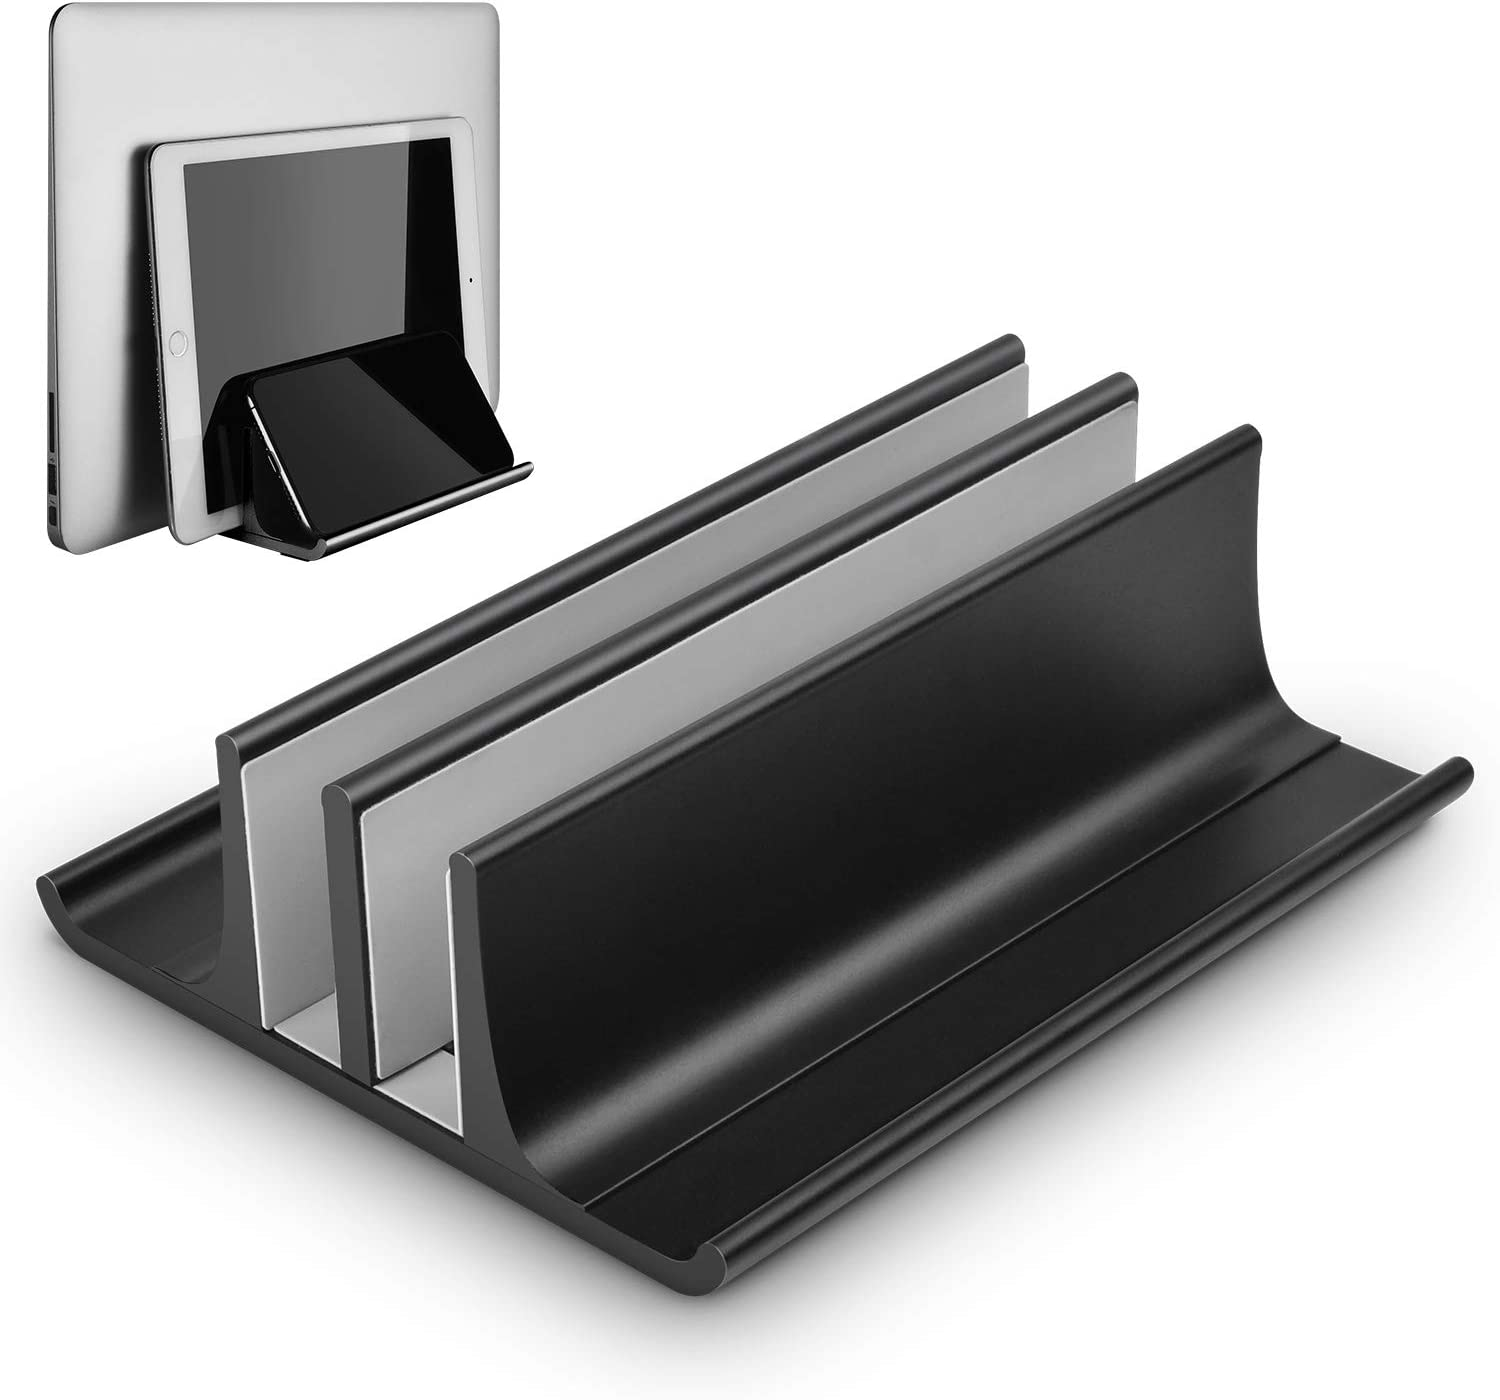 Vertical Laptop Stand, Double Desktop Stand Holder with Adjustable Dock (Up to 17.3 inch), Aluminum Notebook Holder Compatible for MacBook Pro/Air, Surface Laptop, Dell, HP, Samsung, Lenovo,Black